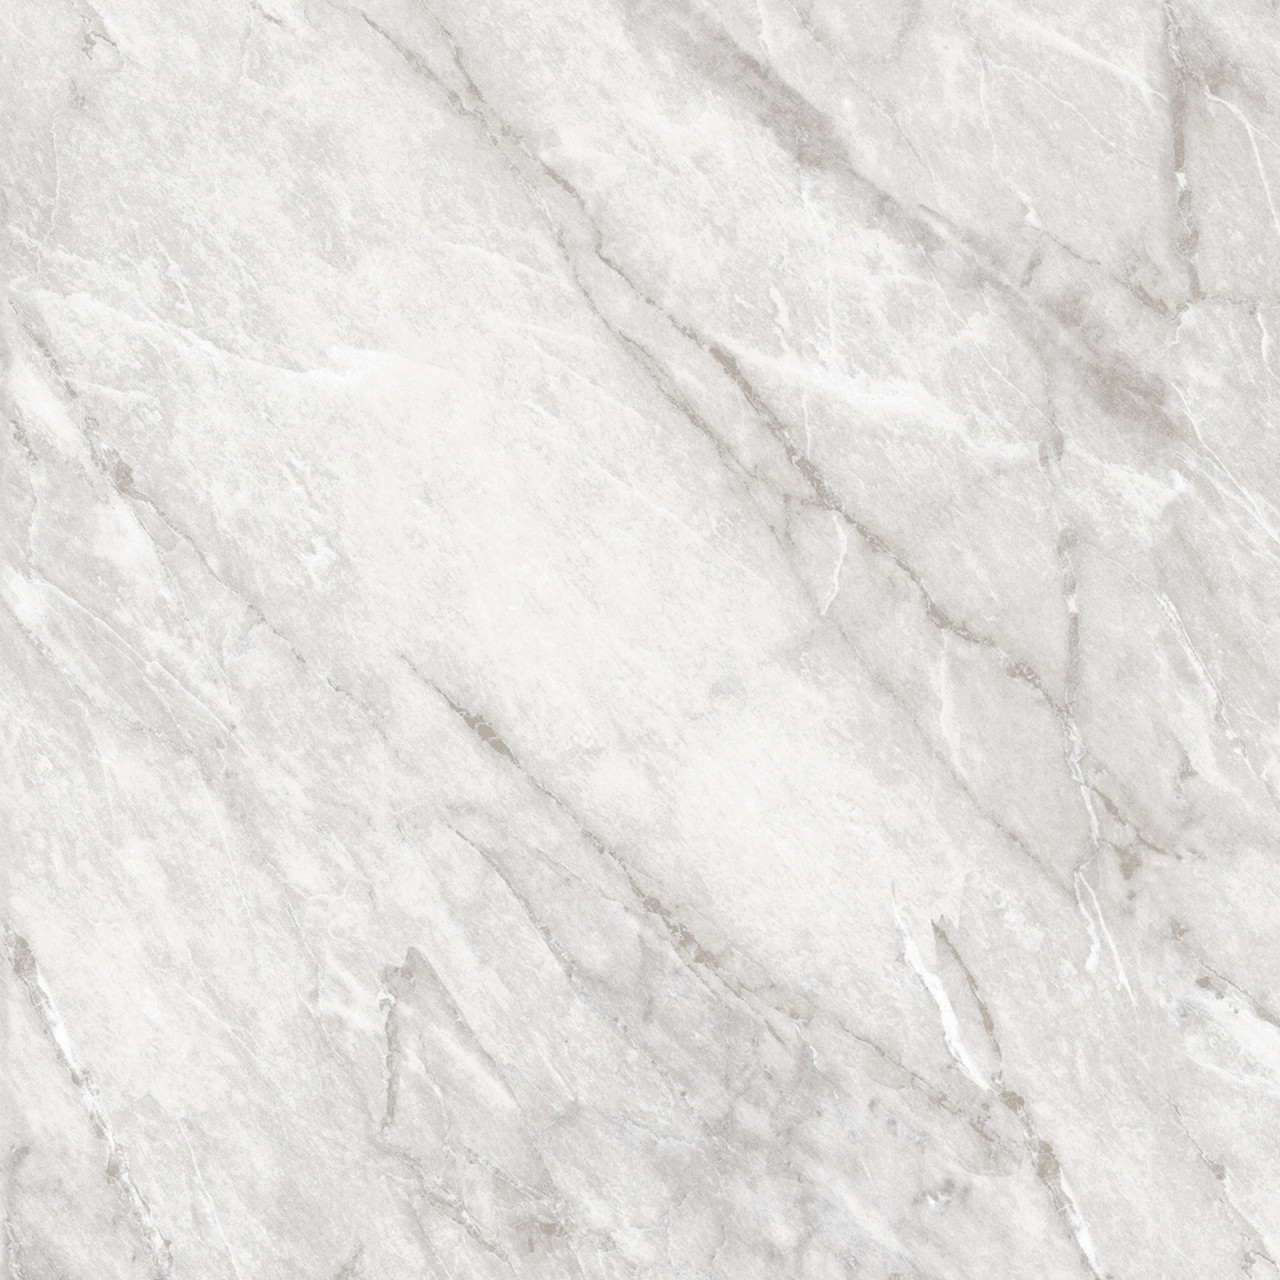 Multipanel Economy Pack of 2 Roman Marble 2400mm x 1000mm Bathroom Wall Panels